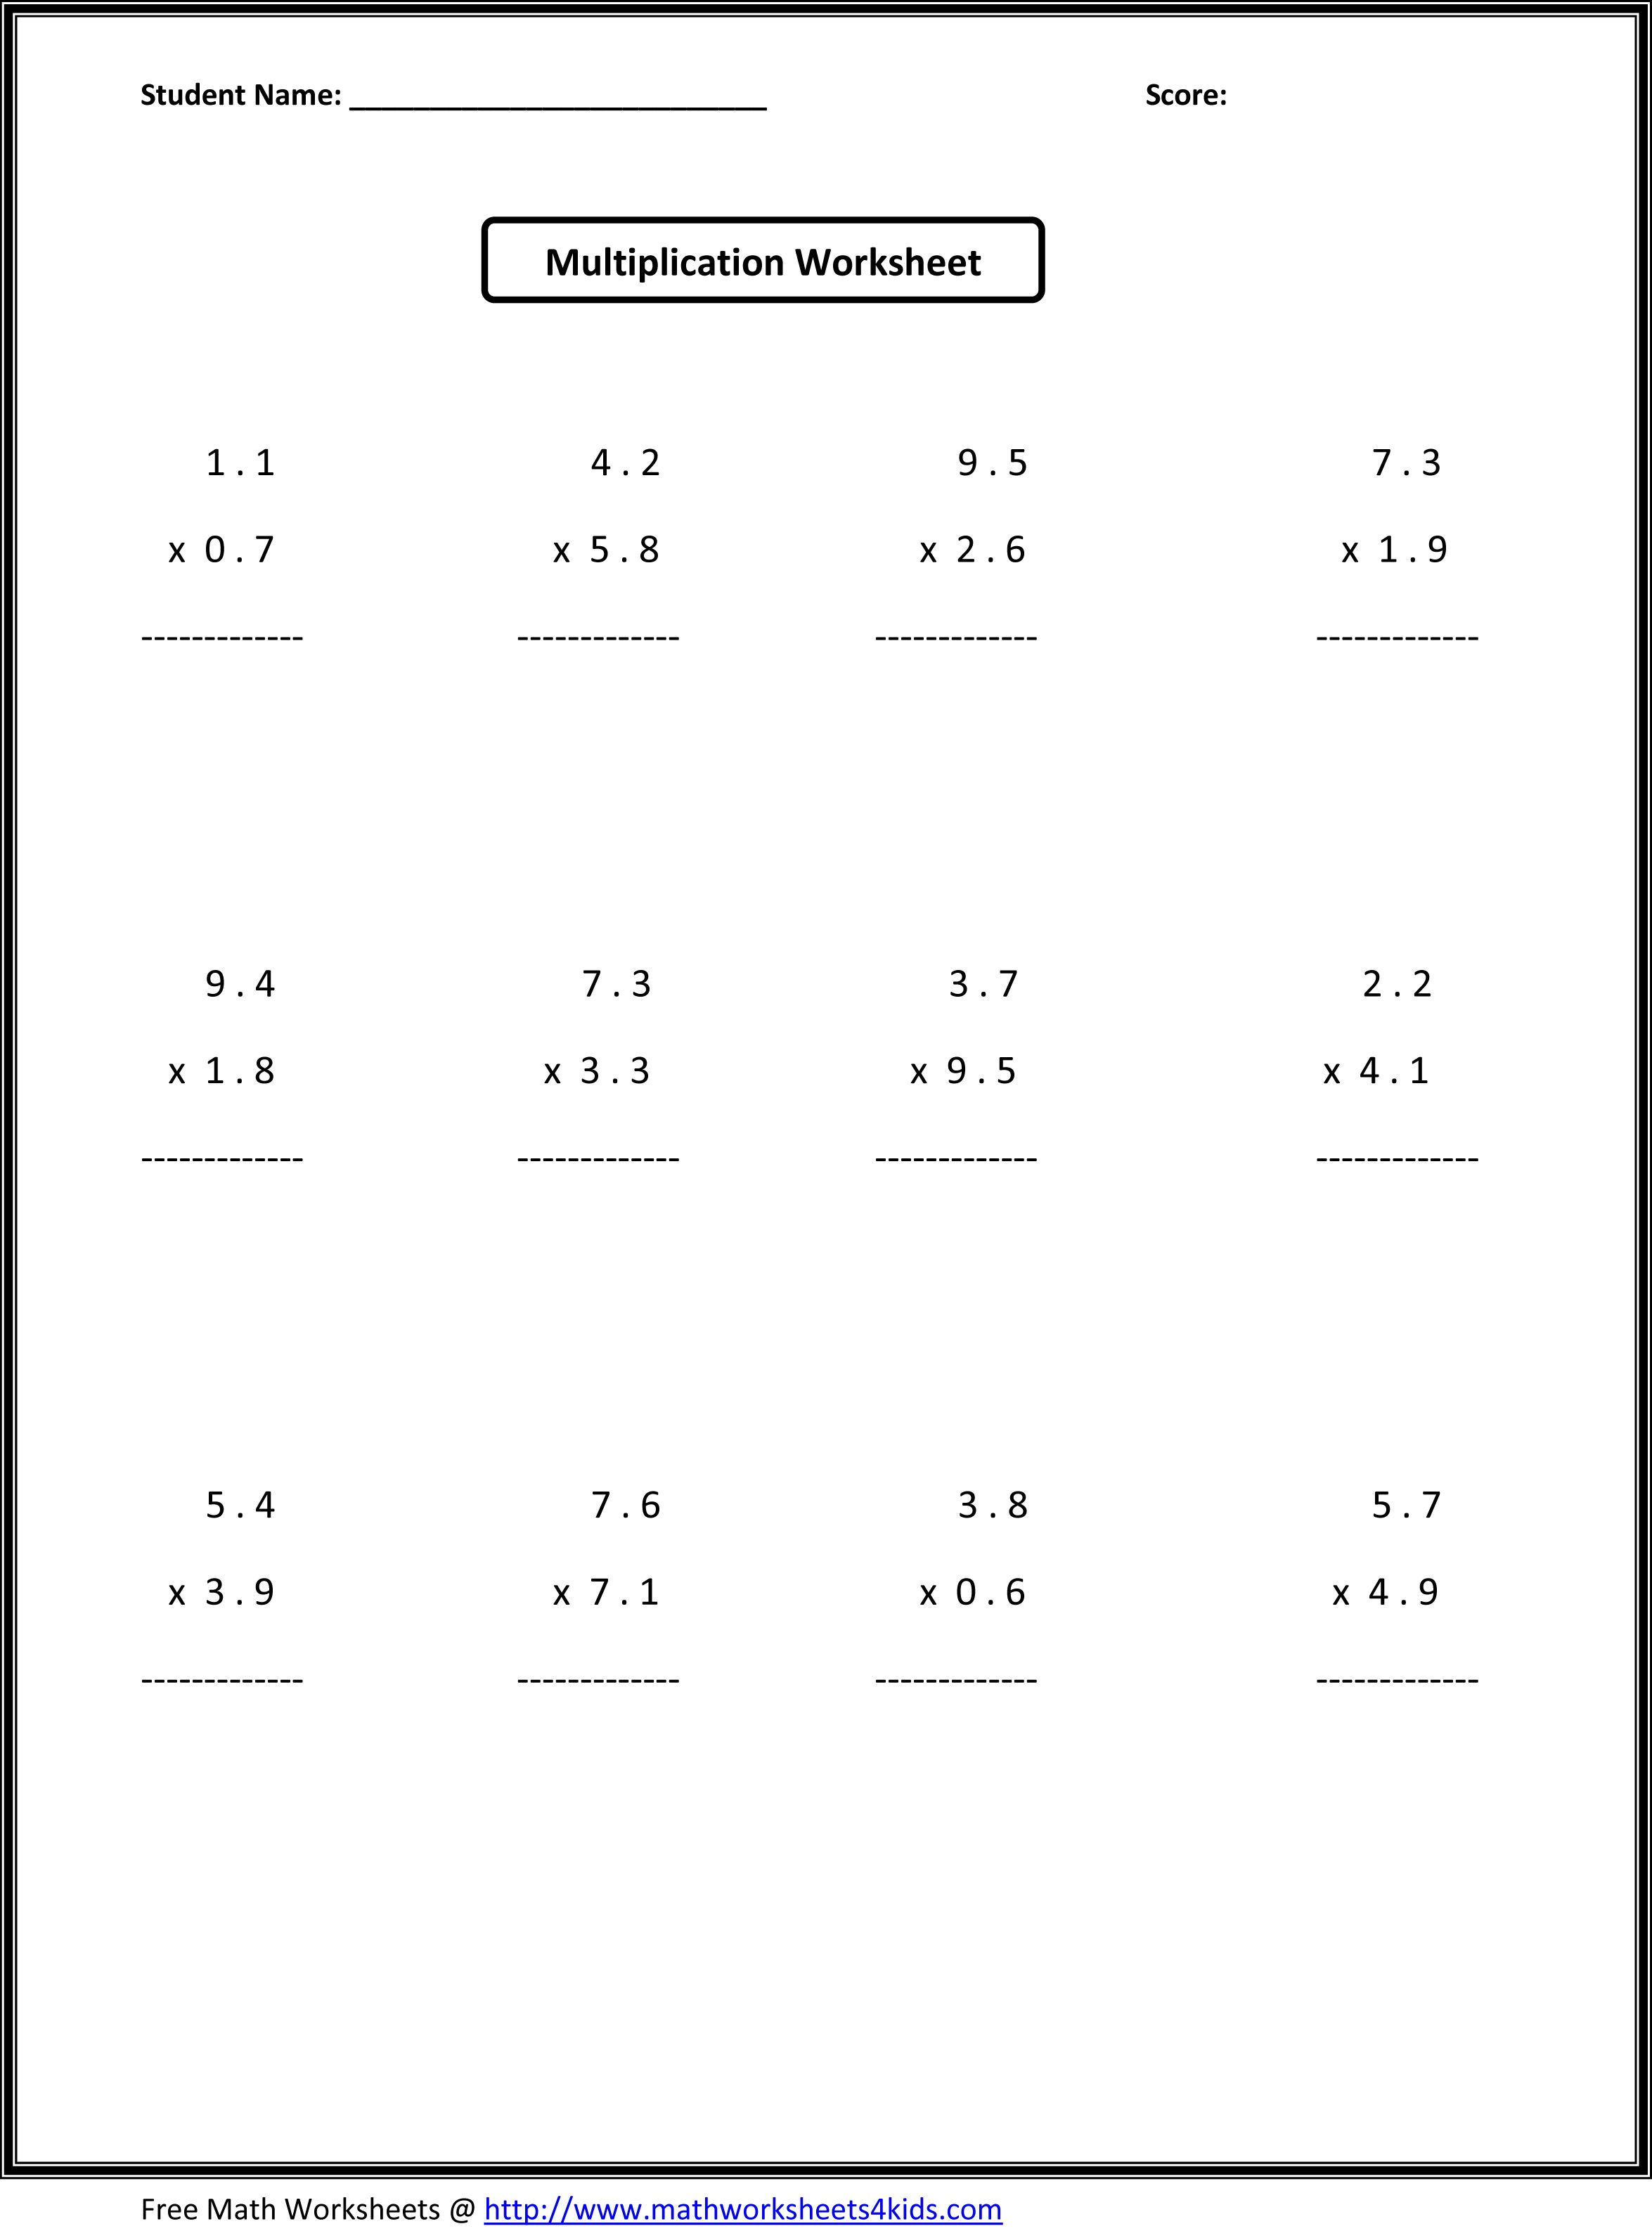 Printables 6th Grade Math Ratio Worksheets 1000 images about math worksheets on pinterest fractions activities and flare